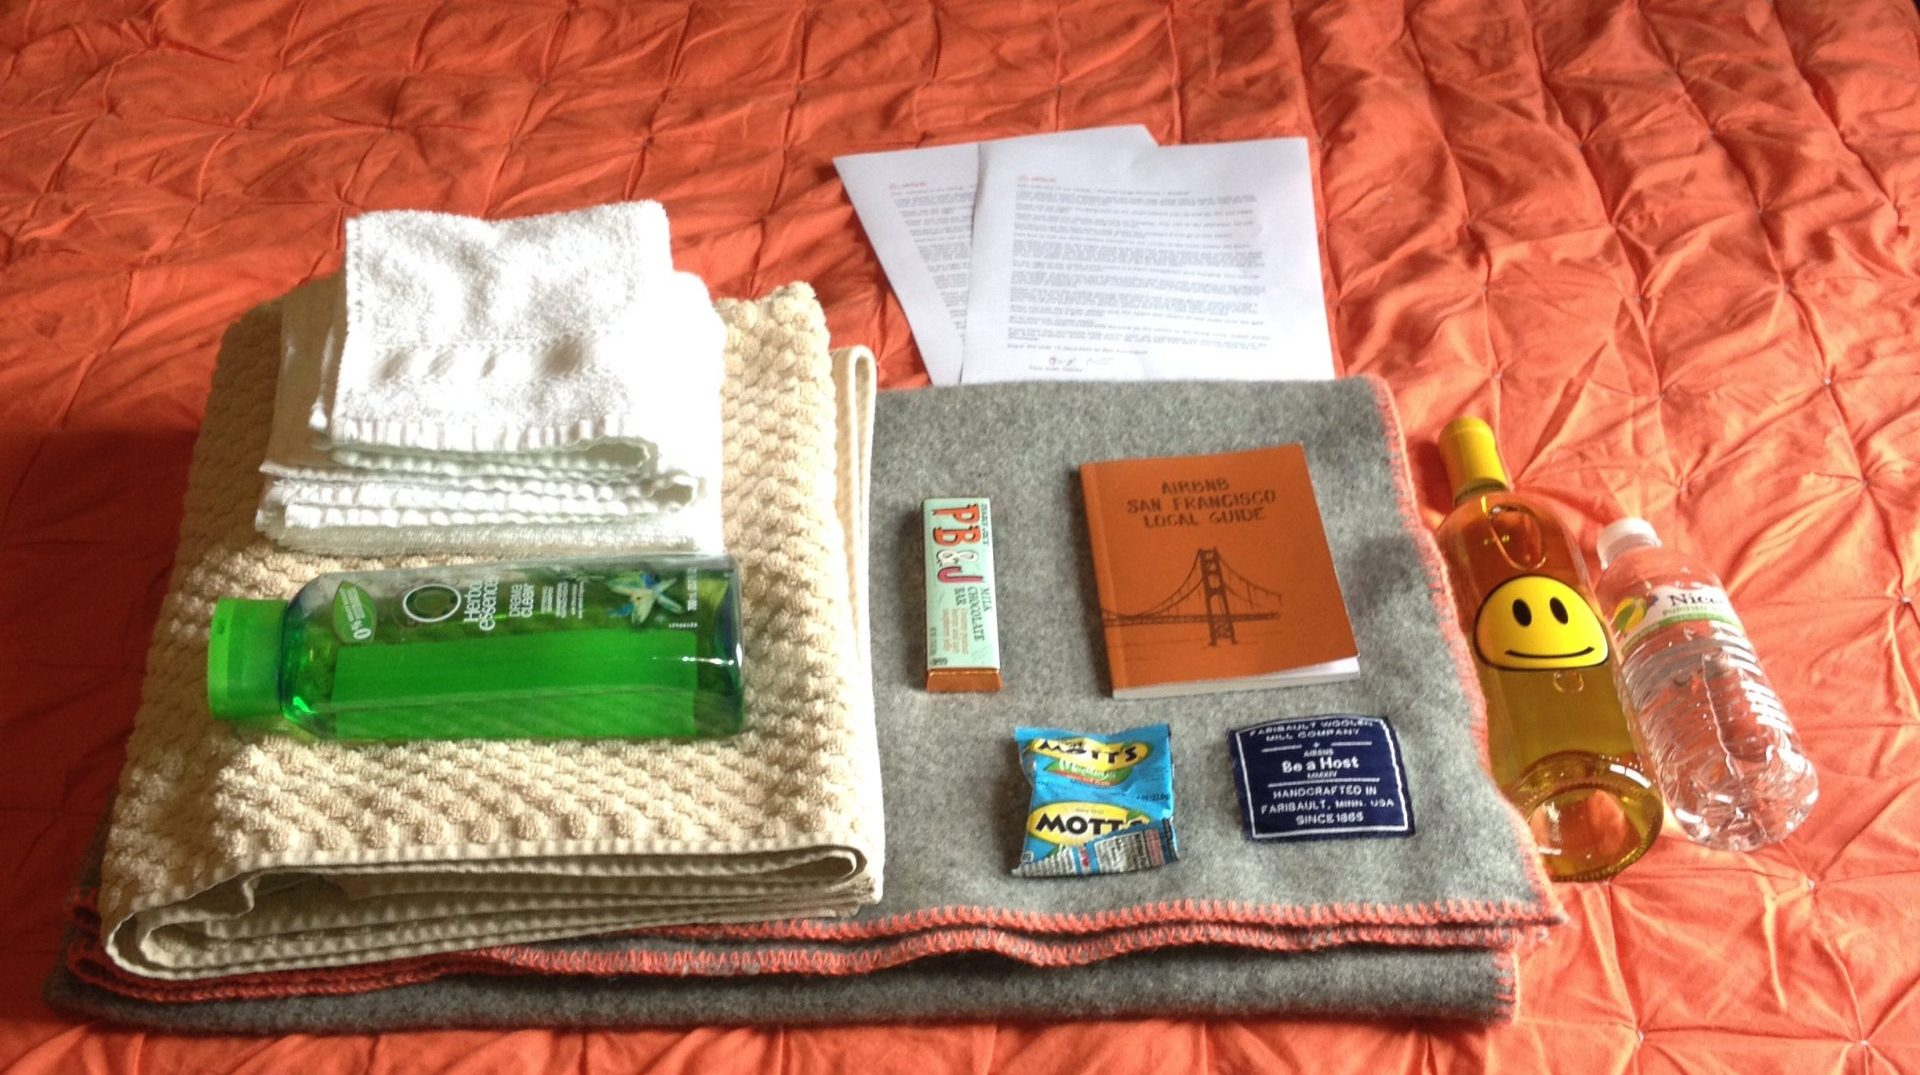 For $100, the Airbnb got towels, shampoo, a welcome note, SF guidebook, snacks, and a bottled water